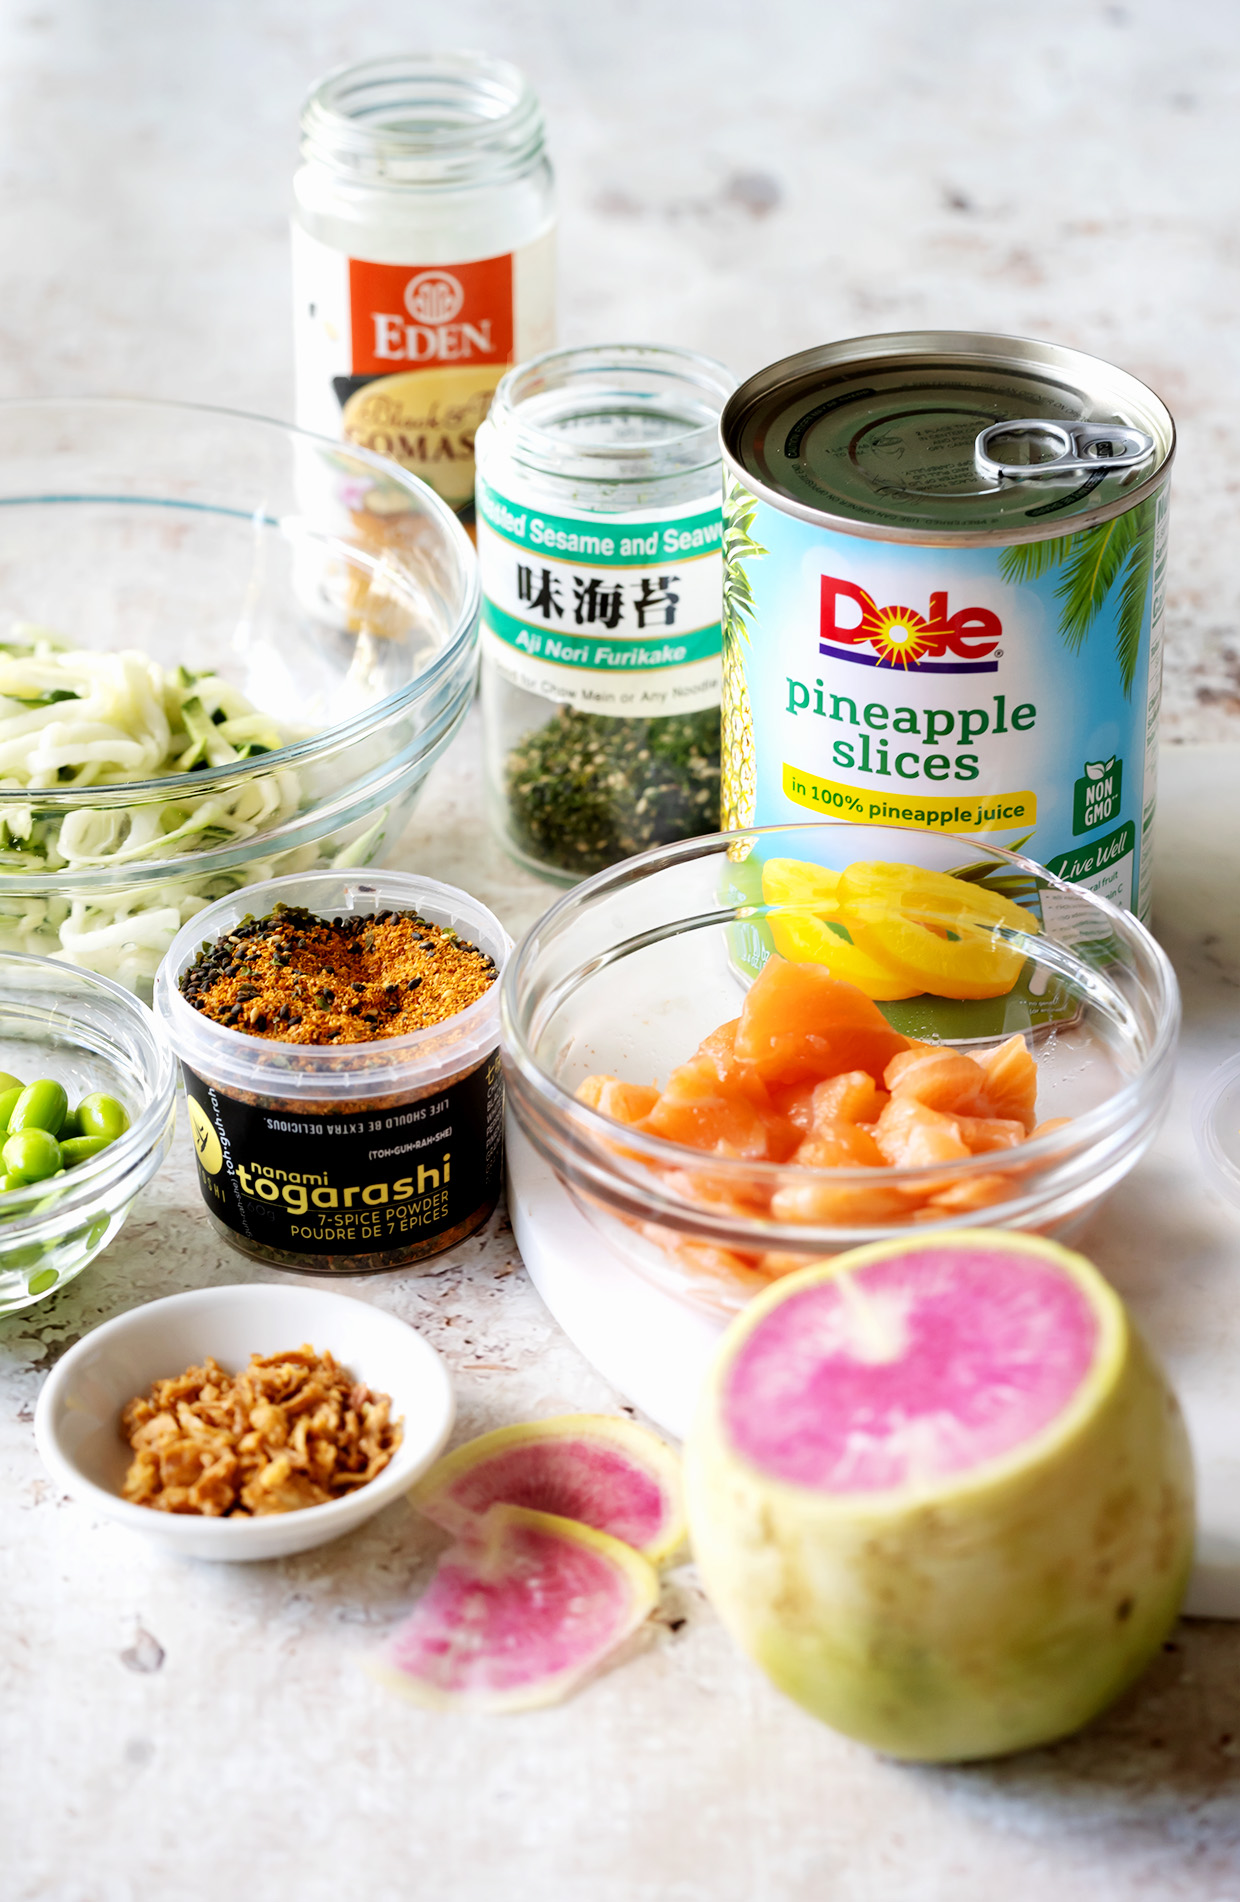 The ingredients for making a salmon bowl include, salmon, pineapple rings, zucchini noodels, edamame, Togarashi, Furikake, spicy mayo and ponzu sauce